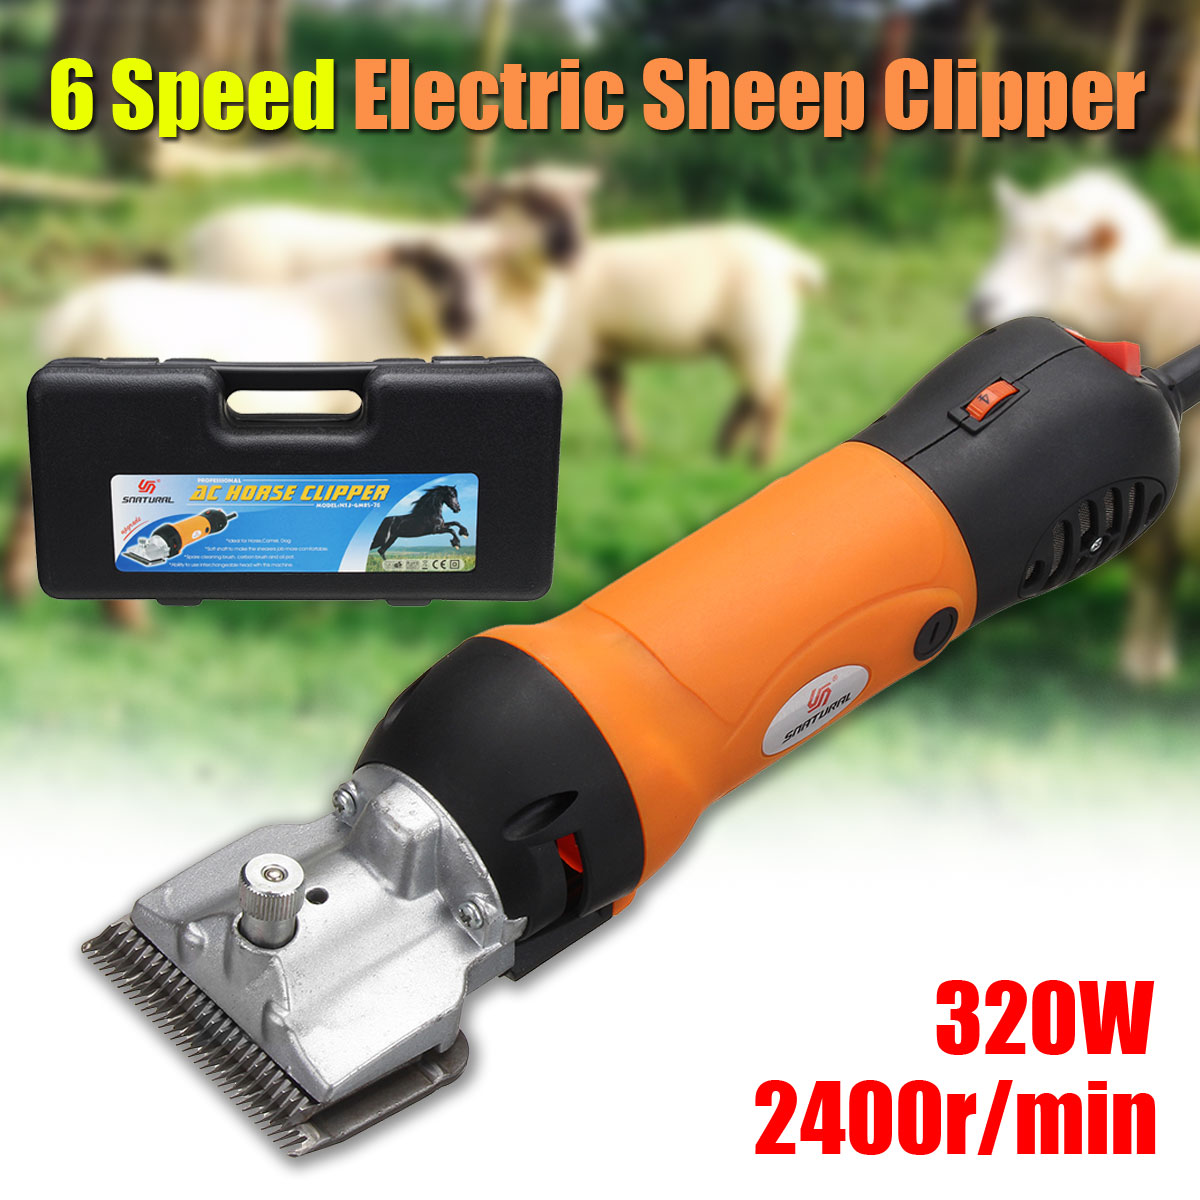 doersupp 110-240V Electric Horse Sheep Clipper 300W Shearing Machine Electric Dog Grooming Kit Cutter Wool scissor 3000r/mindoersupp 110-240V Electric Horse Sheep Clipper 300W Shearing Machine Electric Dog Grooming Kit Cutter Wool scissor 3000r/min